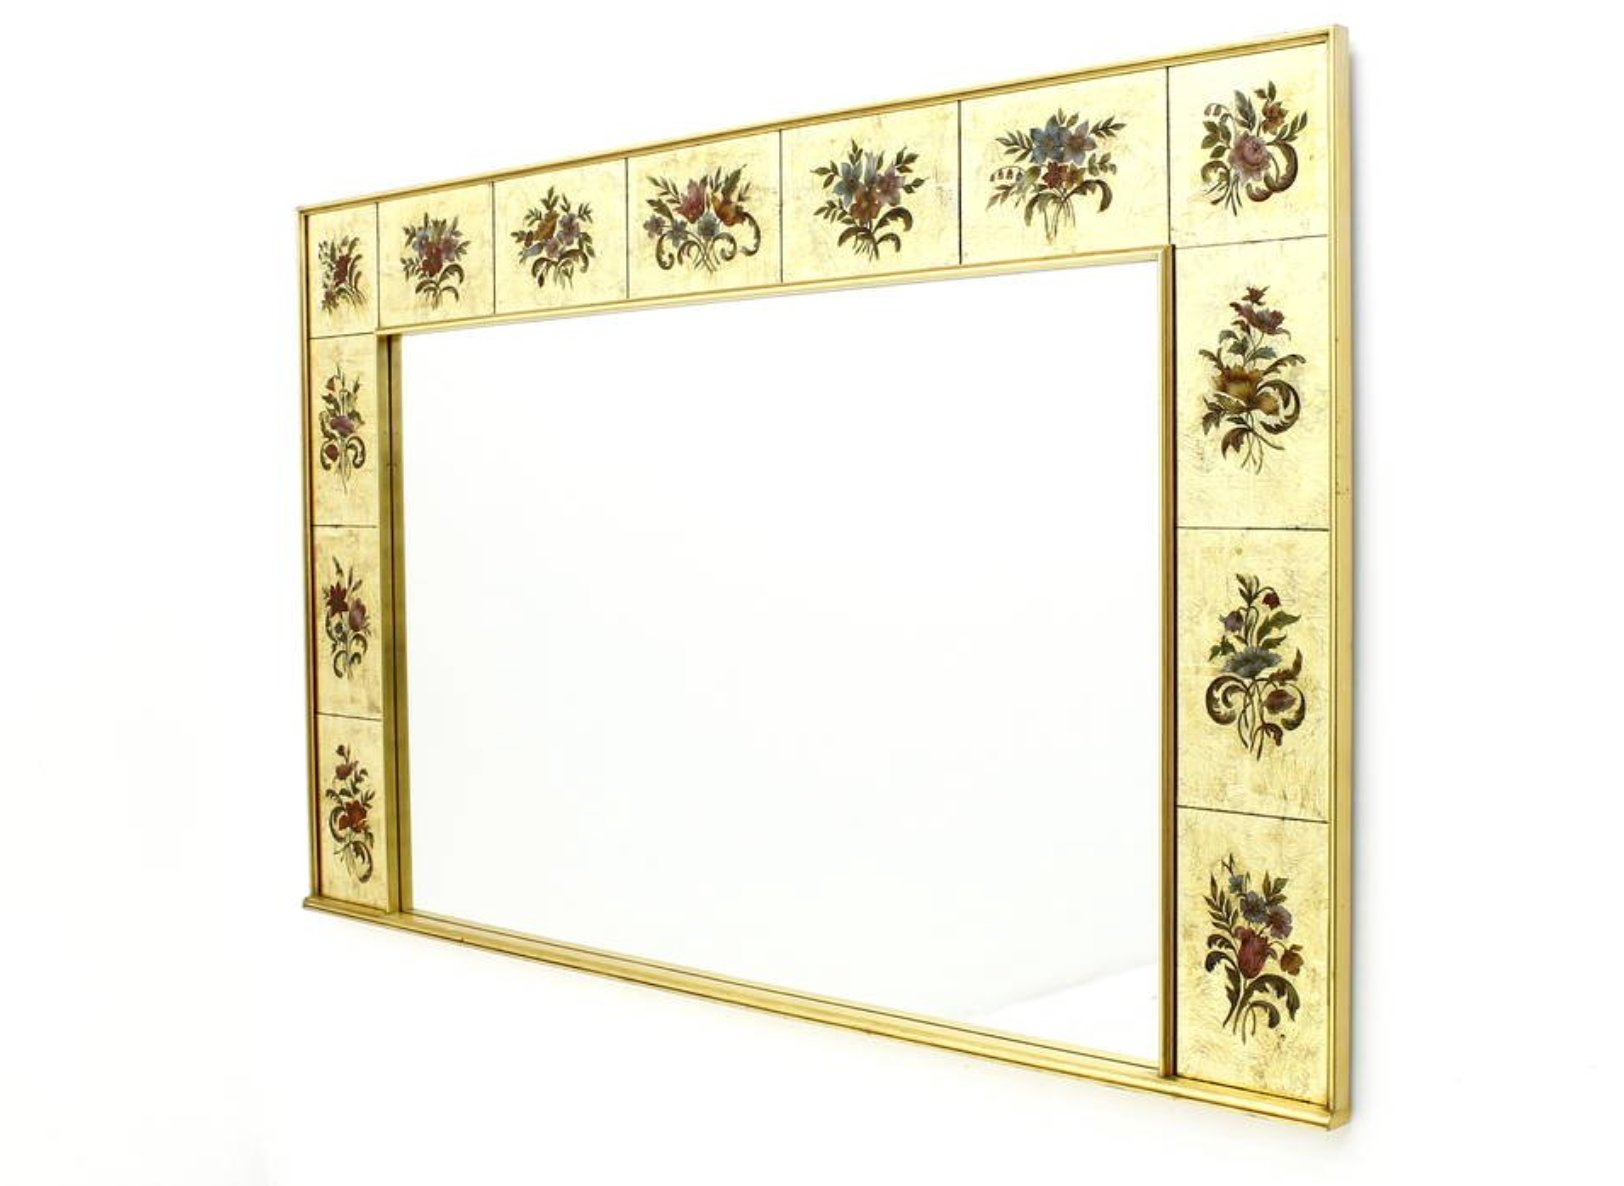 Large decorative wall mirror 1980s for sale at pamono for Big mirrors for sale